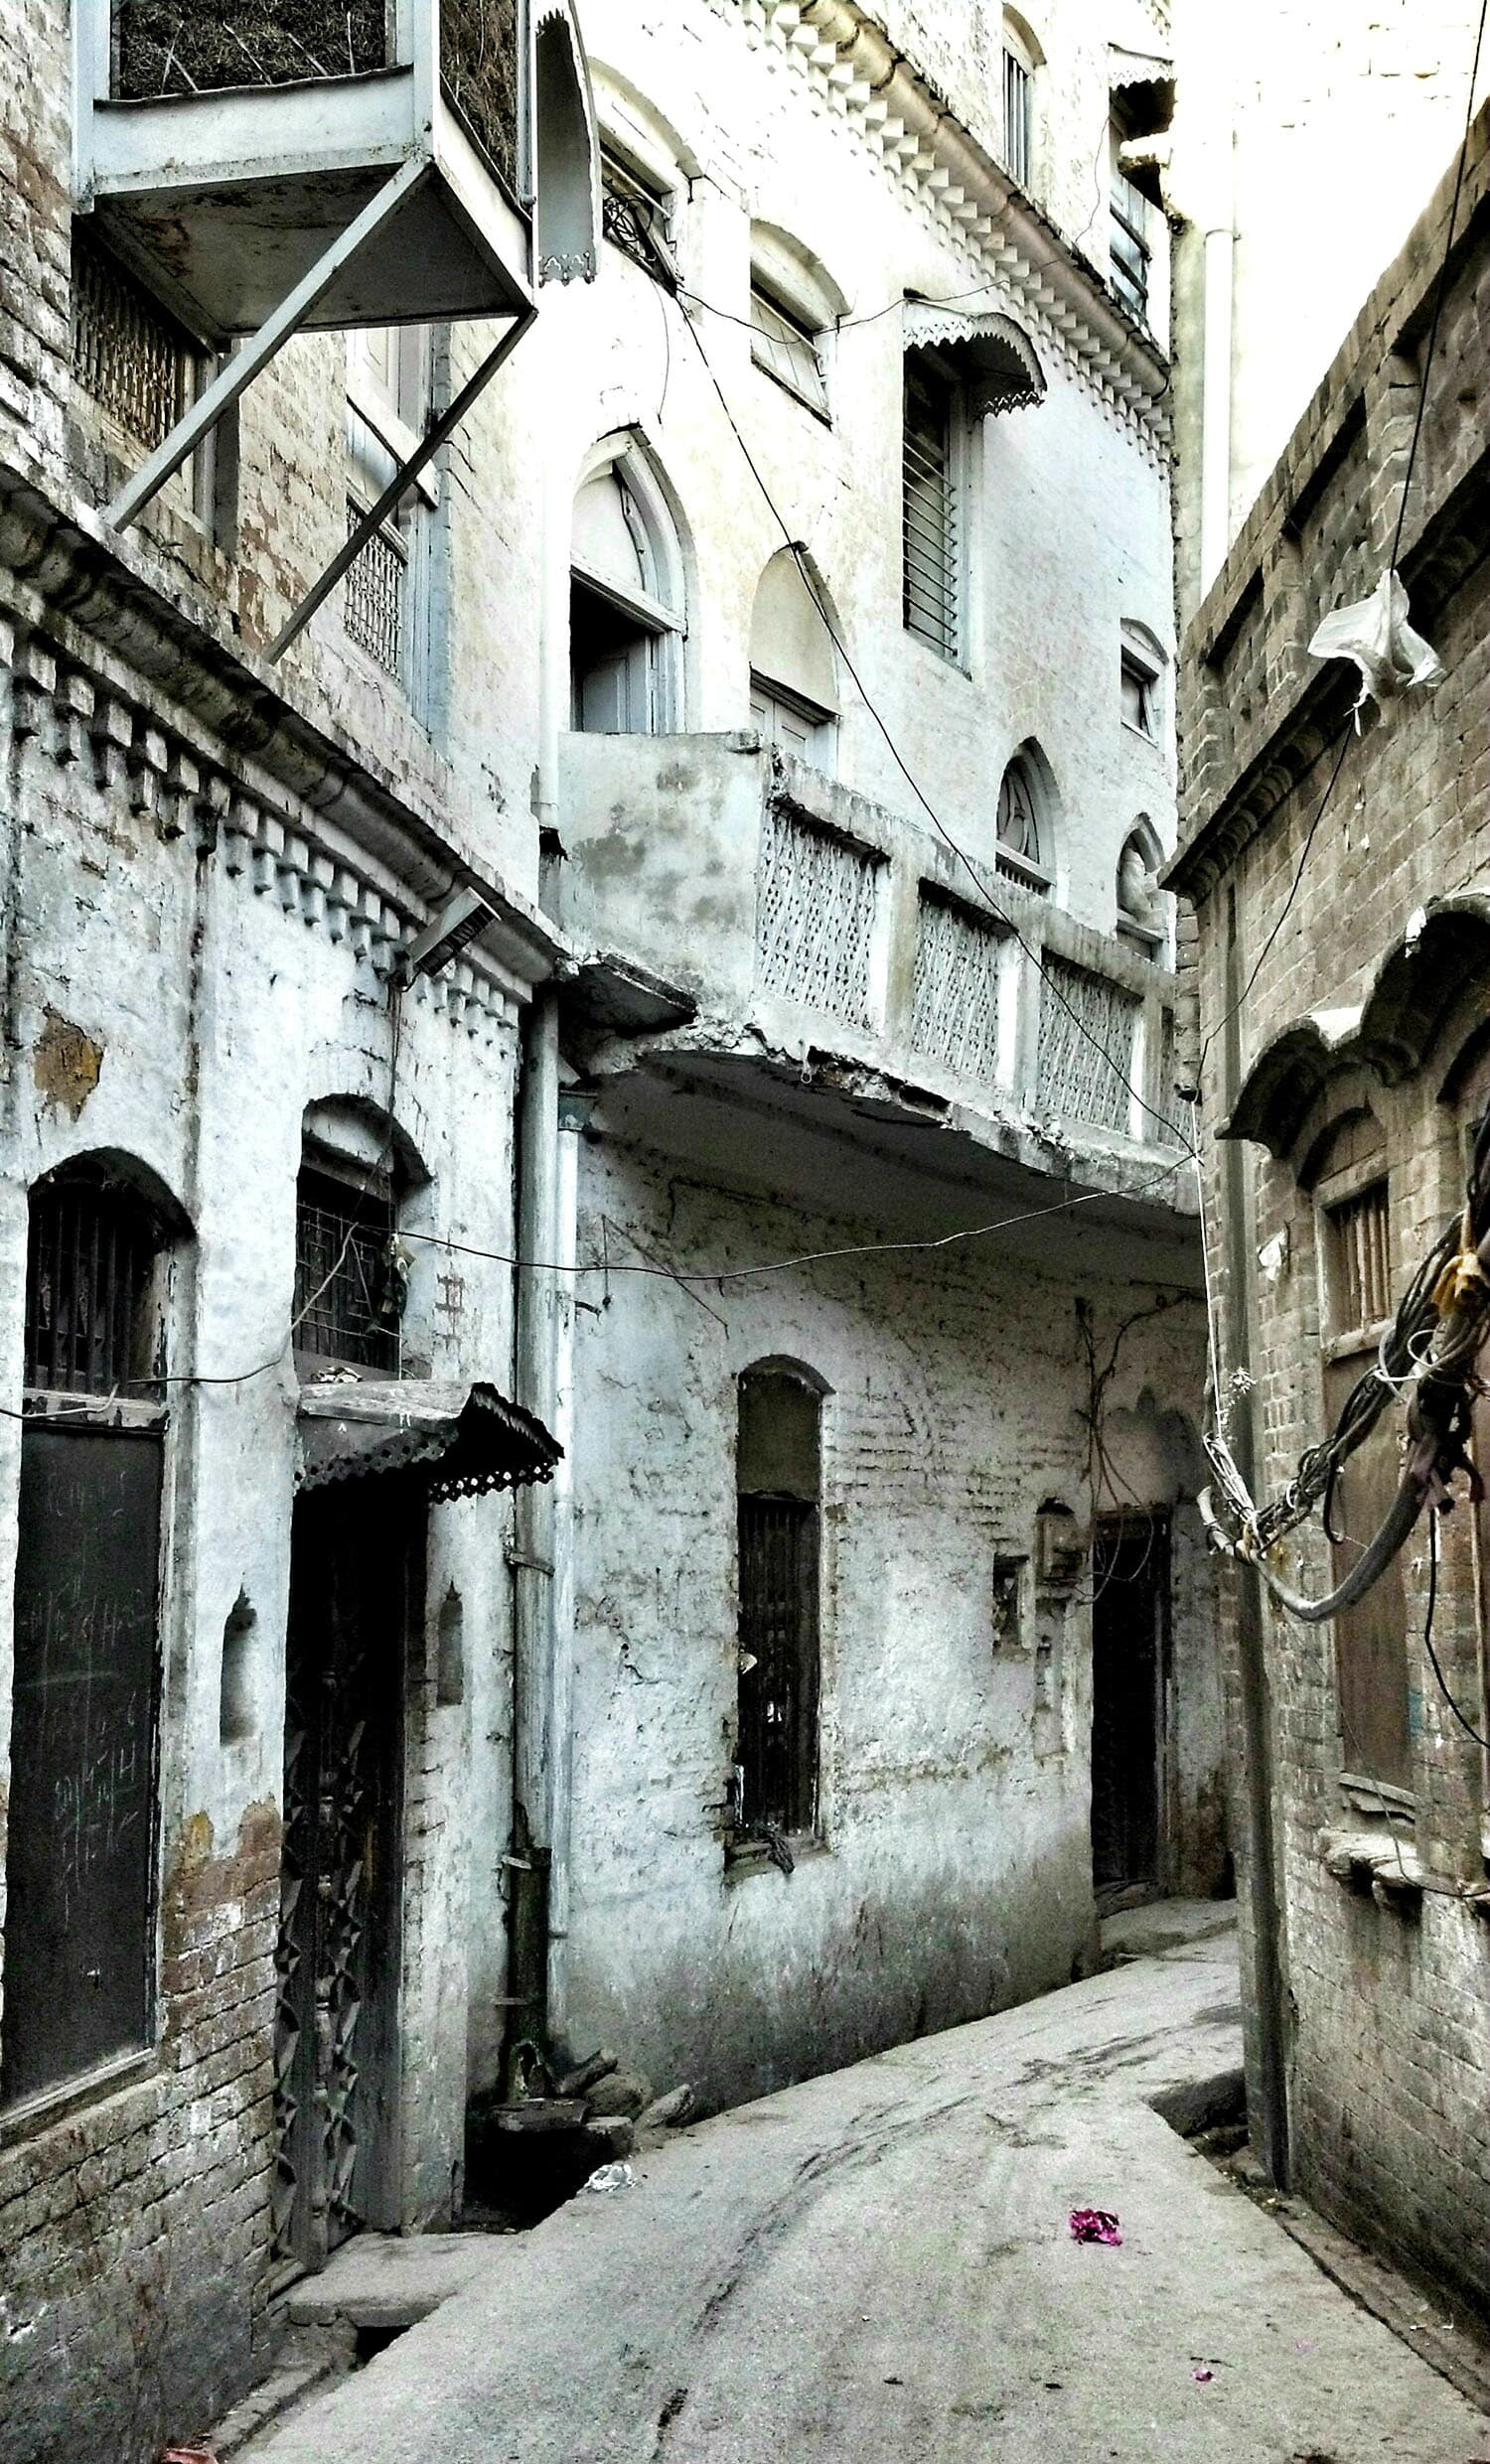 The narrow lanes of Sujan Singh *haveli* in Bhabra Bazaar, which was one of the most well-renowned neighbourhoods of its time.